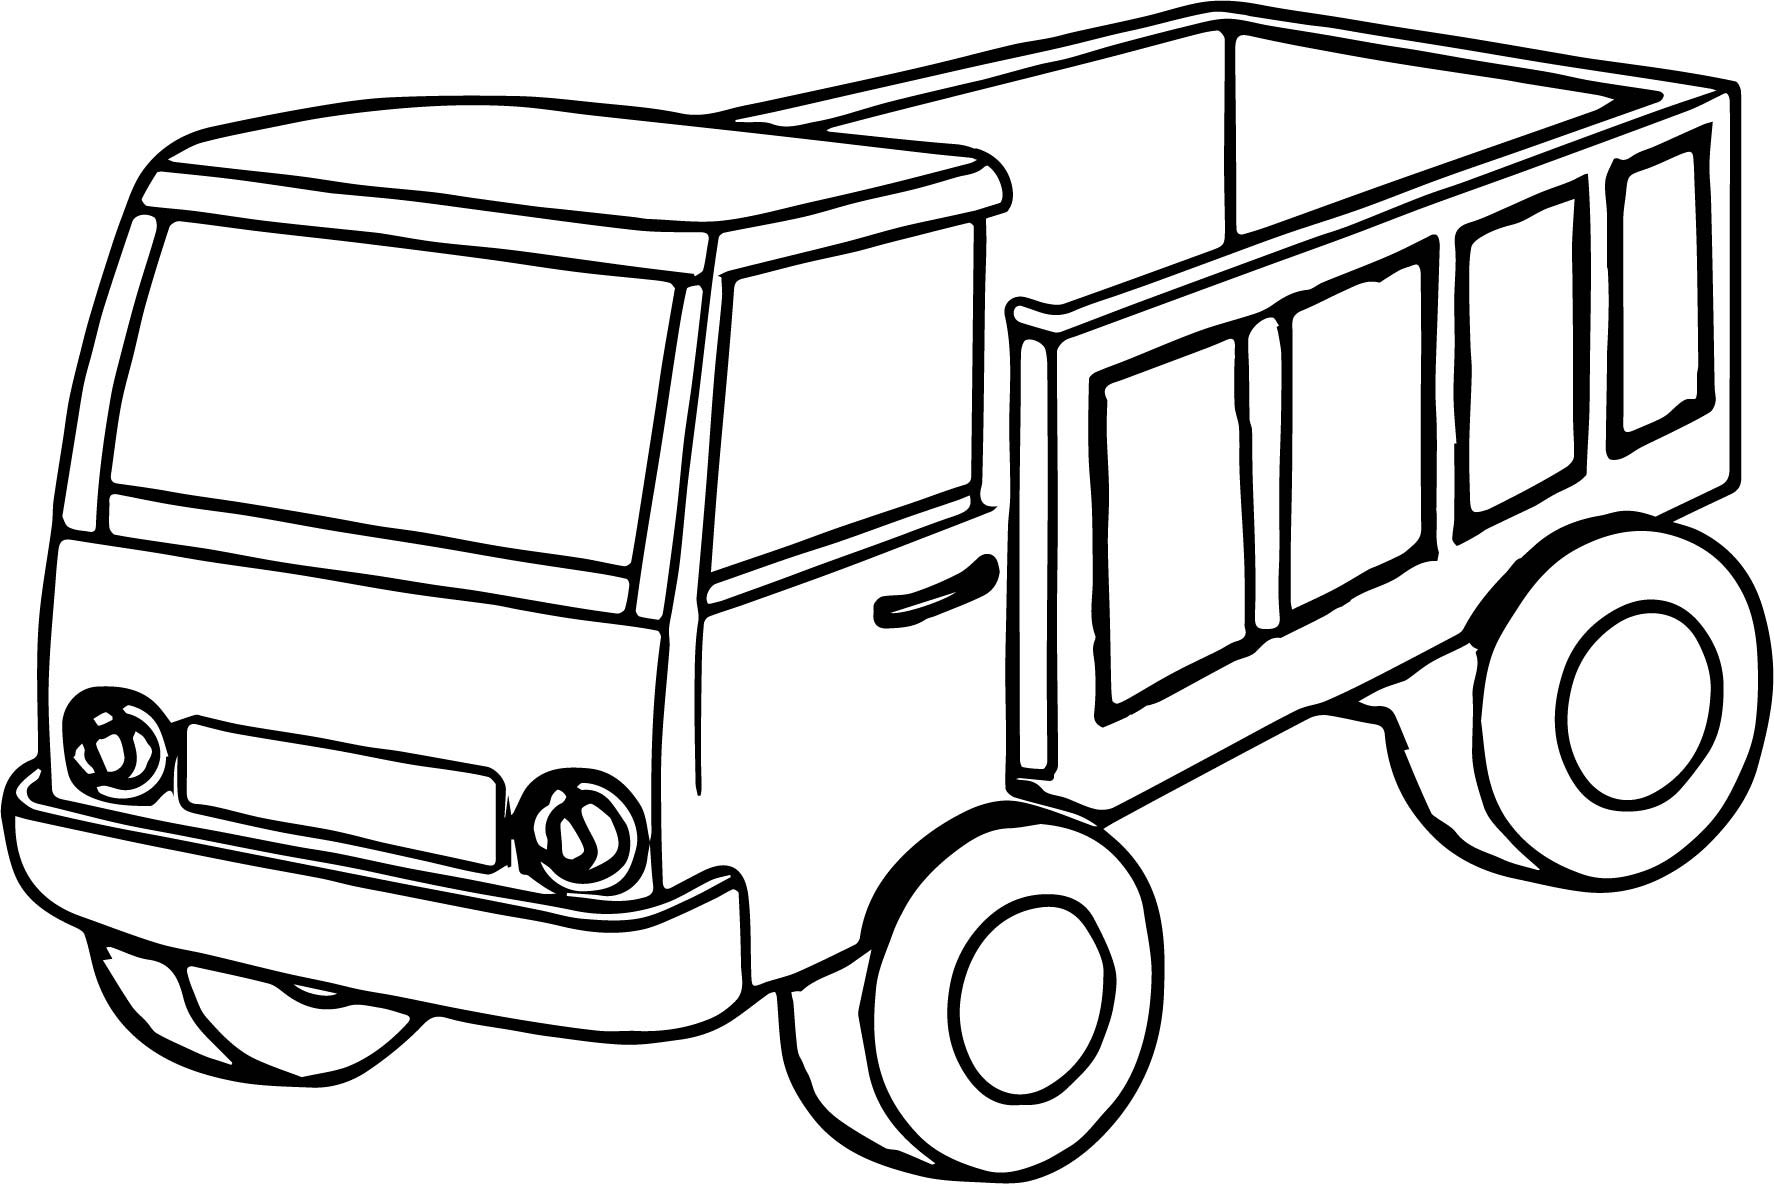 1774x1184 Excellent Truck Coloring Pages For Preschoolers Sampler